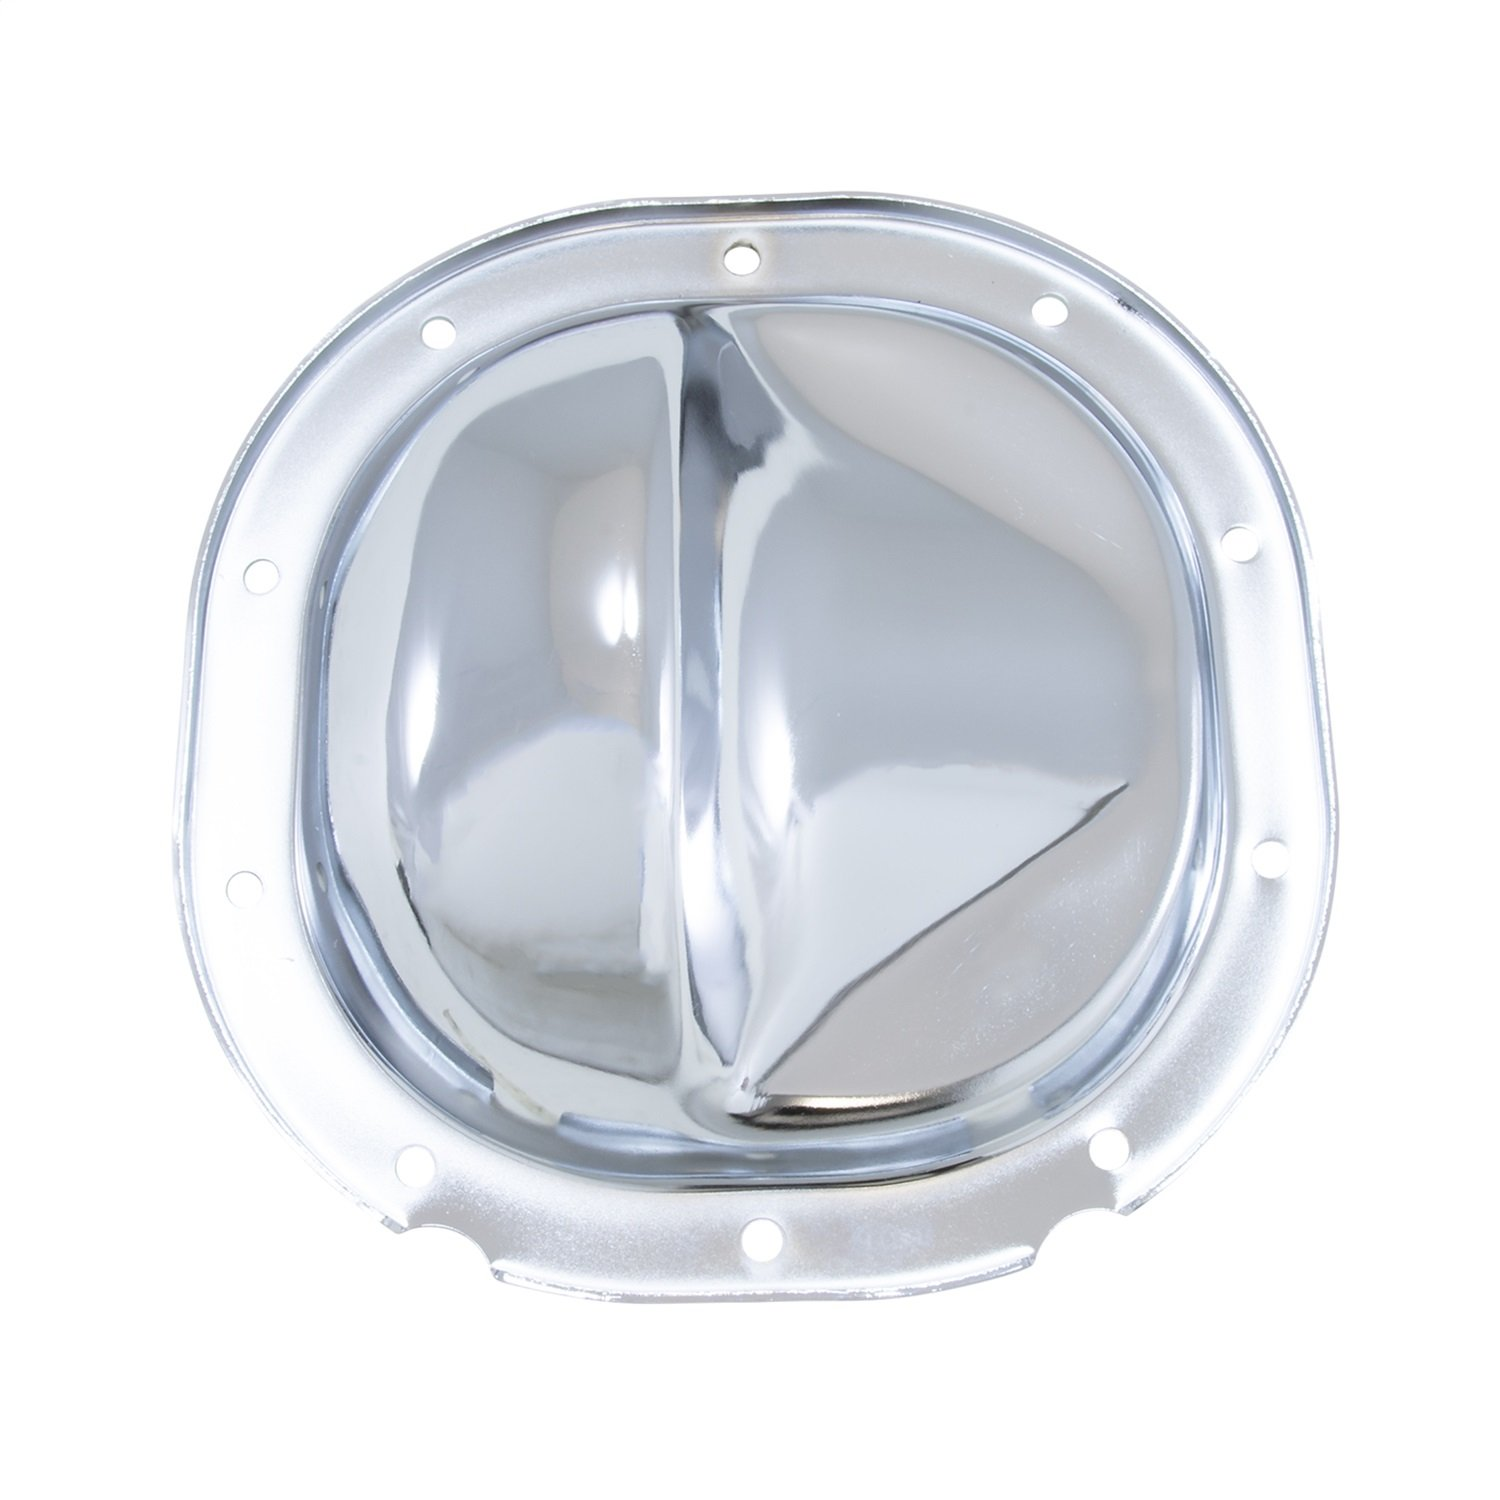 Yukon (YP C1-F8.8) Chrome Cover for Ford 8.8' Differential Yukon Gear